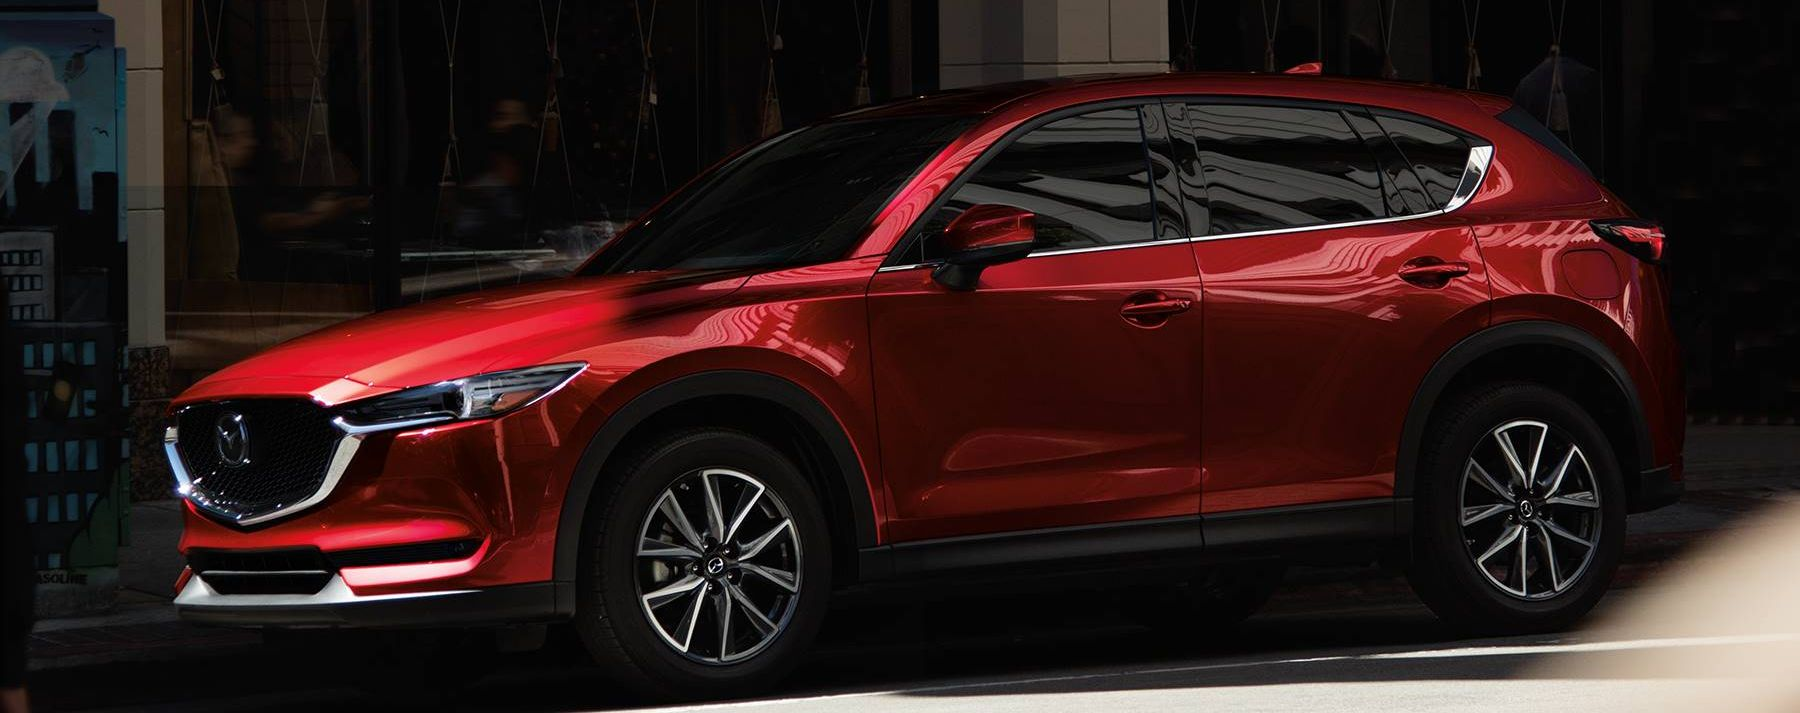 2018 Mazda CX-5 Financing in Sacramento, CA